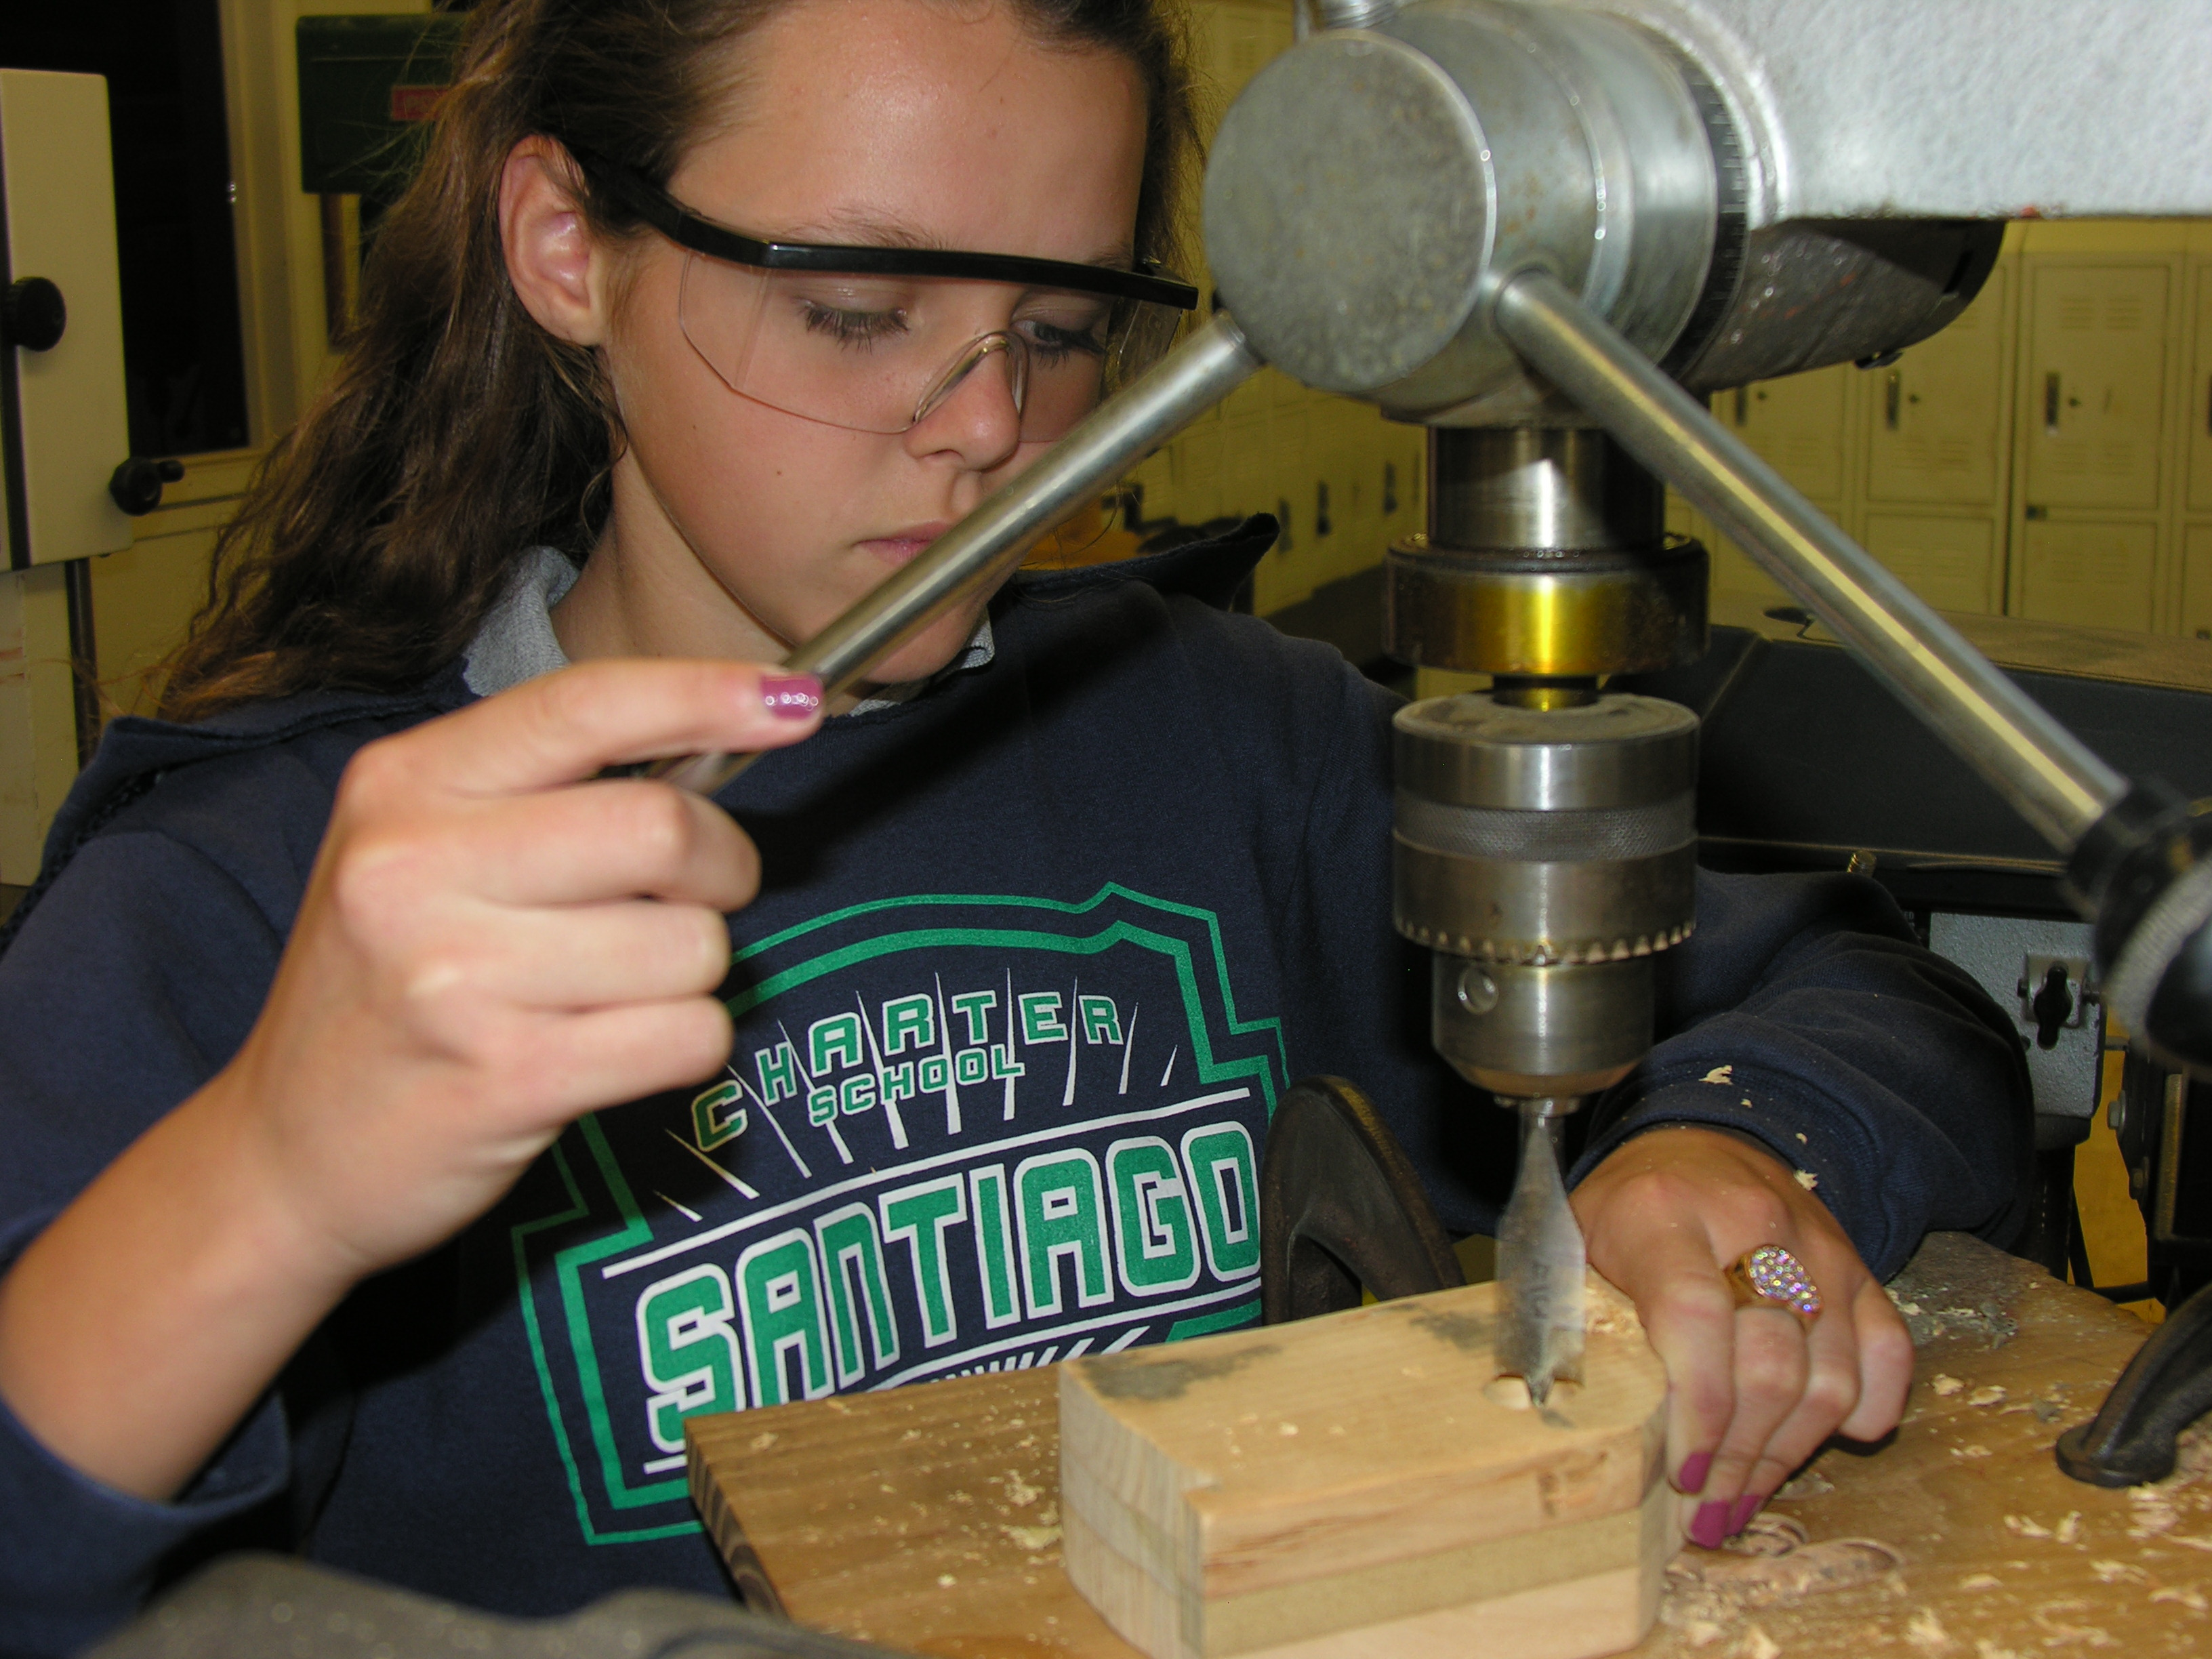 Student working at drill press